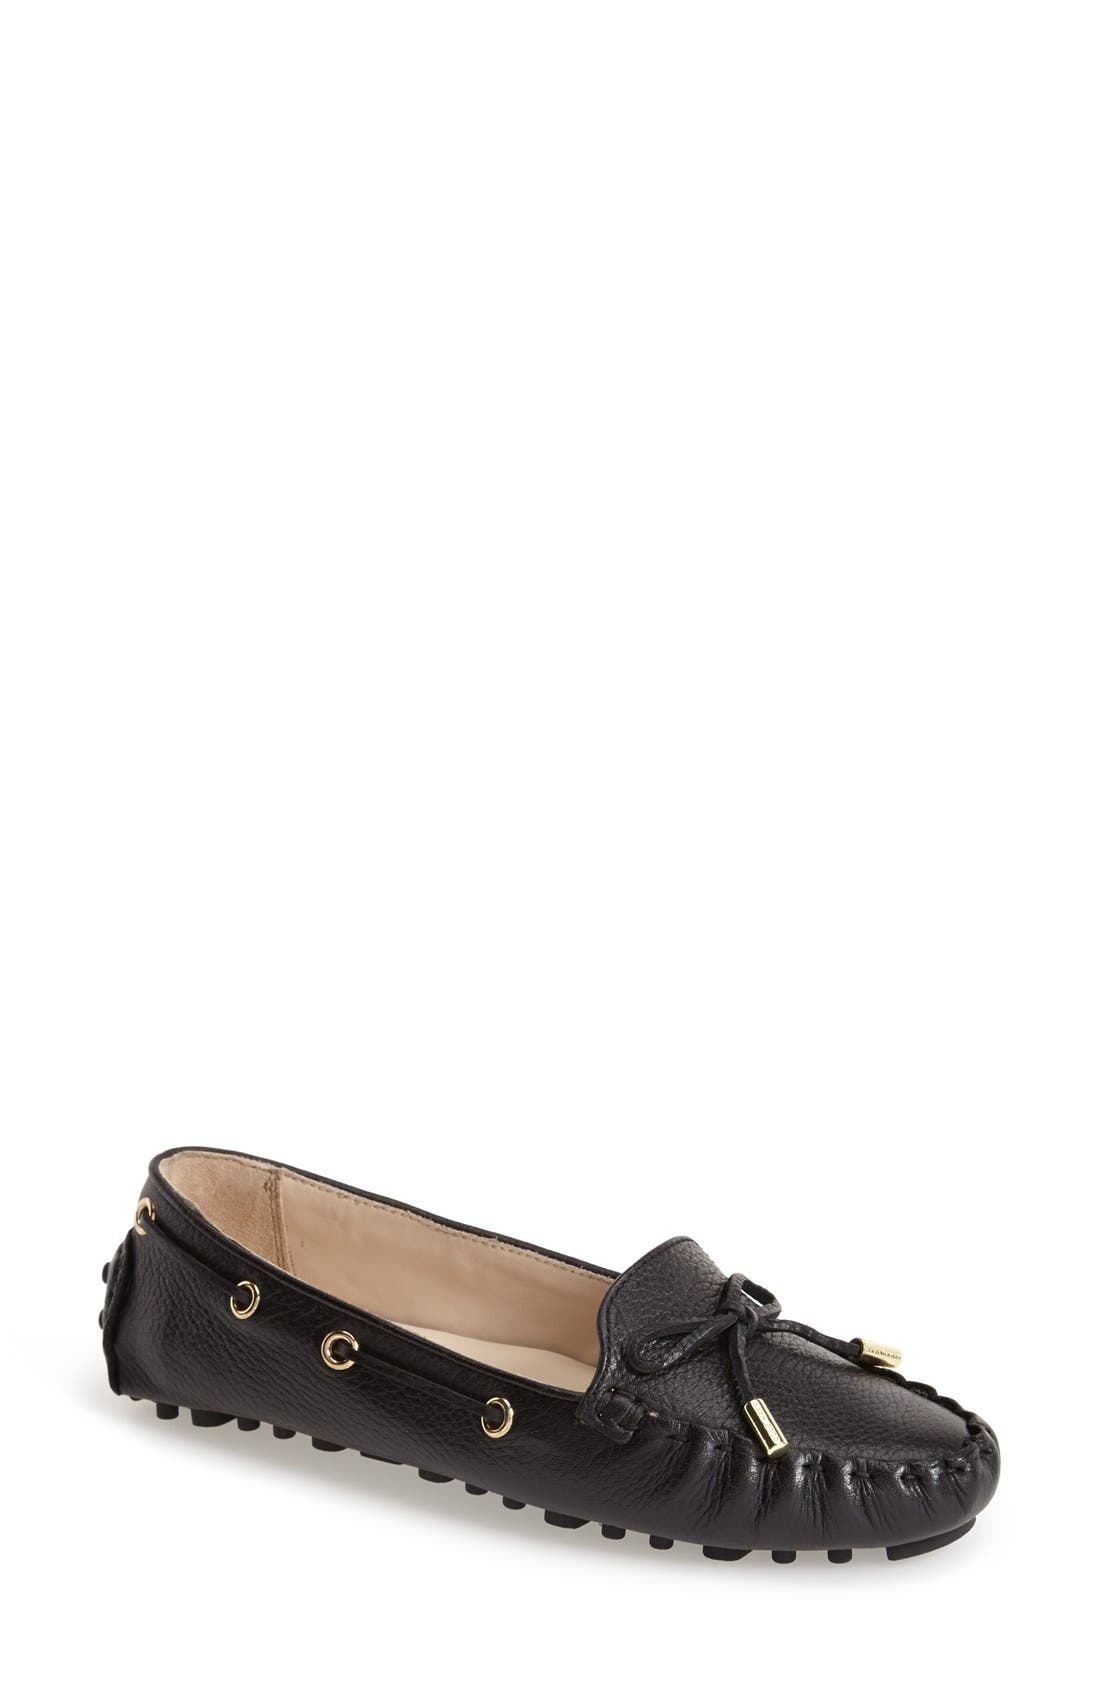 Alternate Image 1 Selected - Cole Haan 'Cary' Leather Driving Flat (Women)